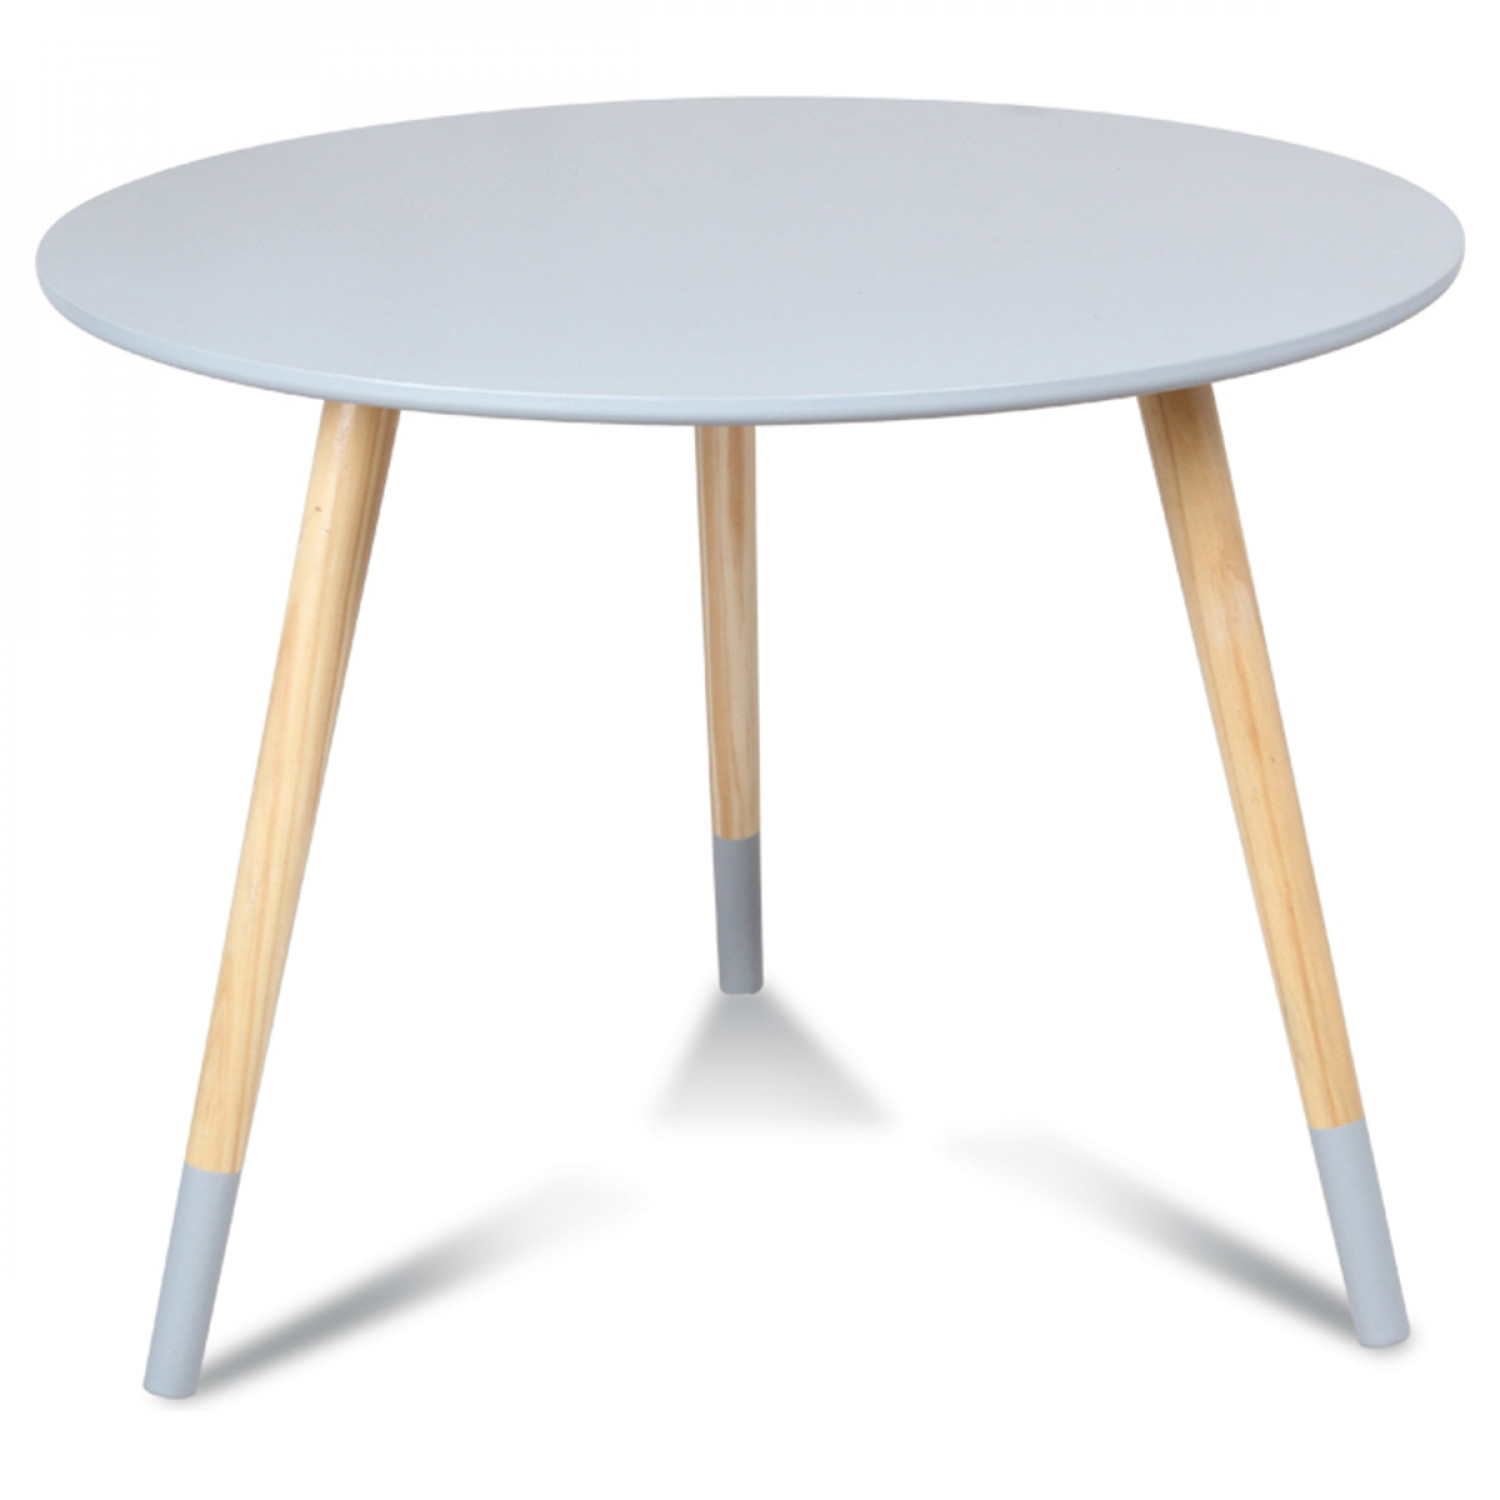 Table basse scandinave 60cm